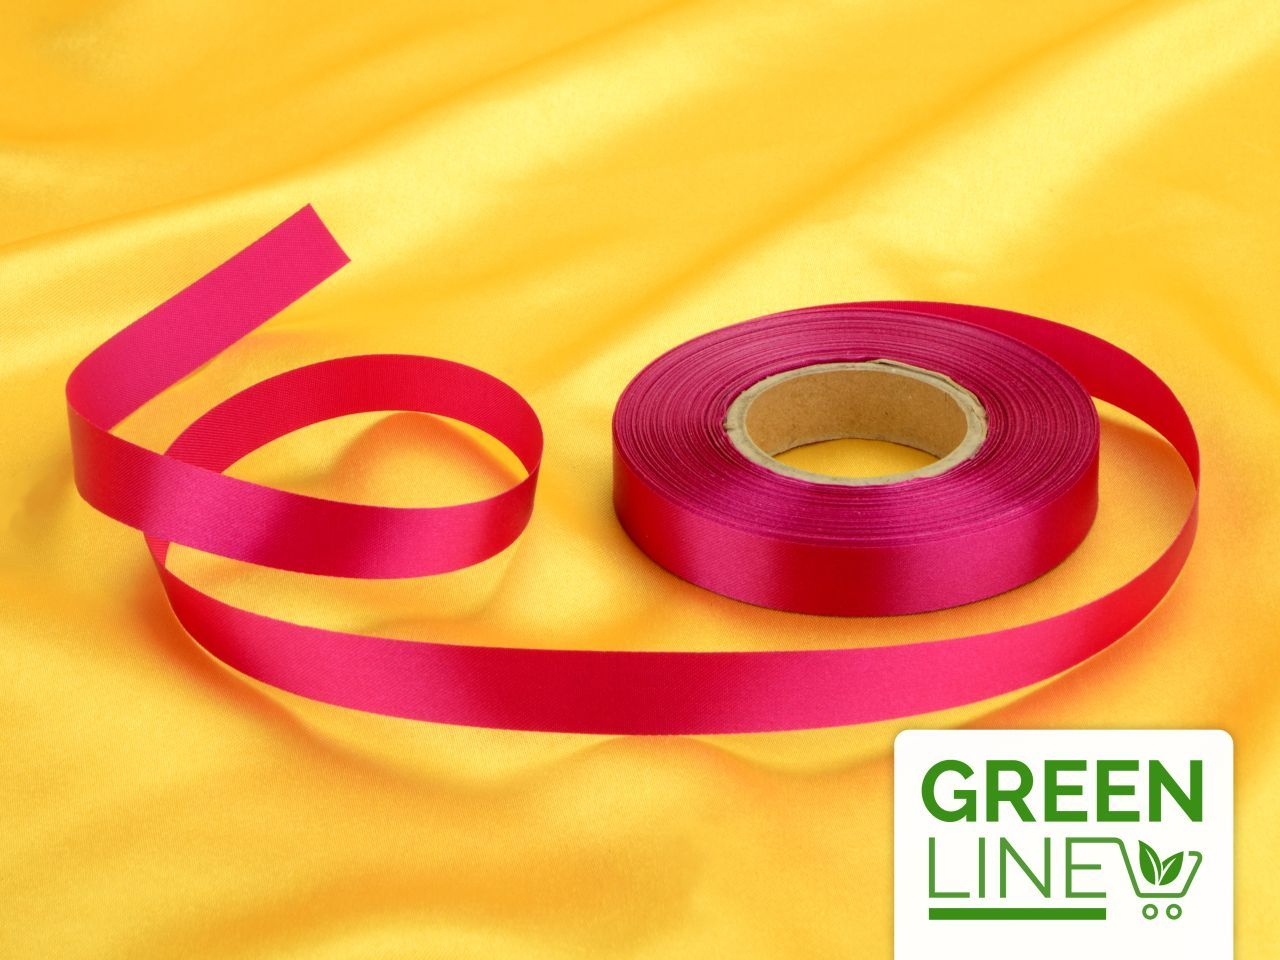 Satinband purpur 14mm, 30 Meter GREENLINE von Cake-Masters